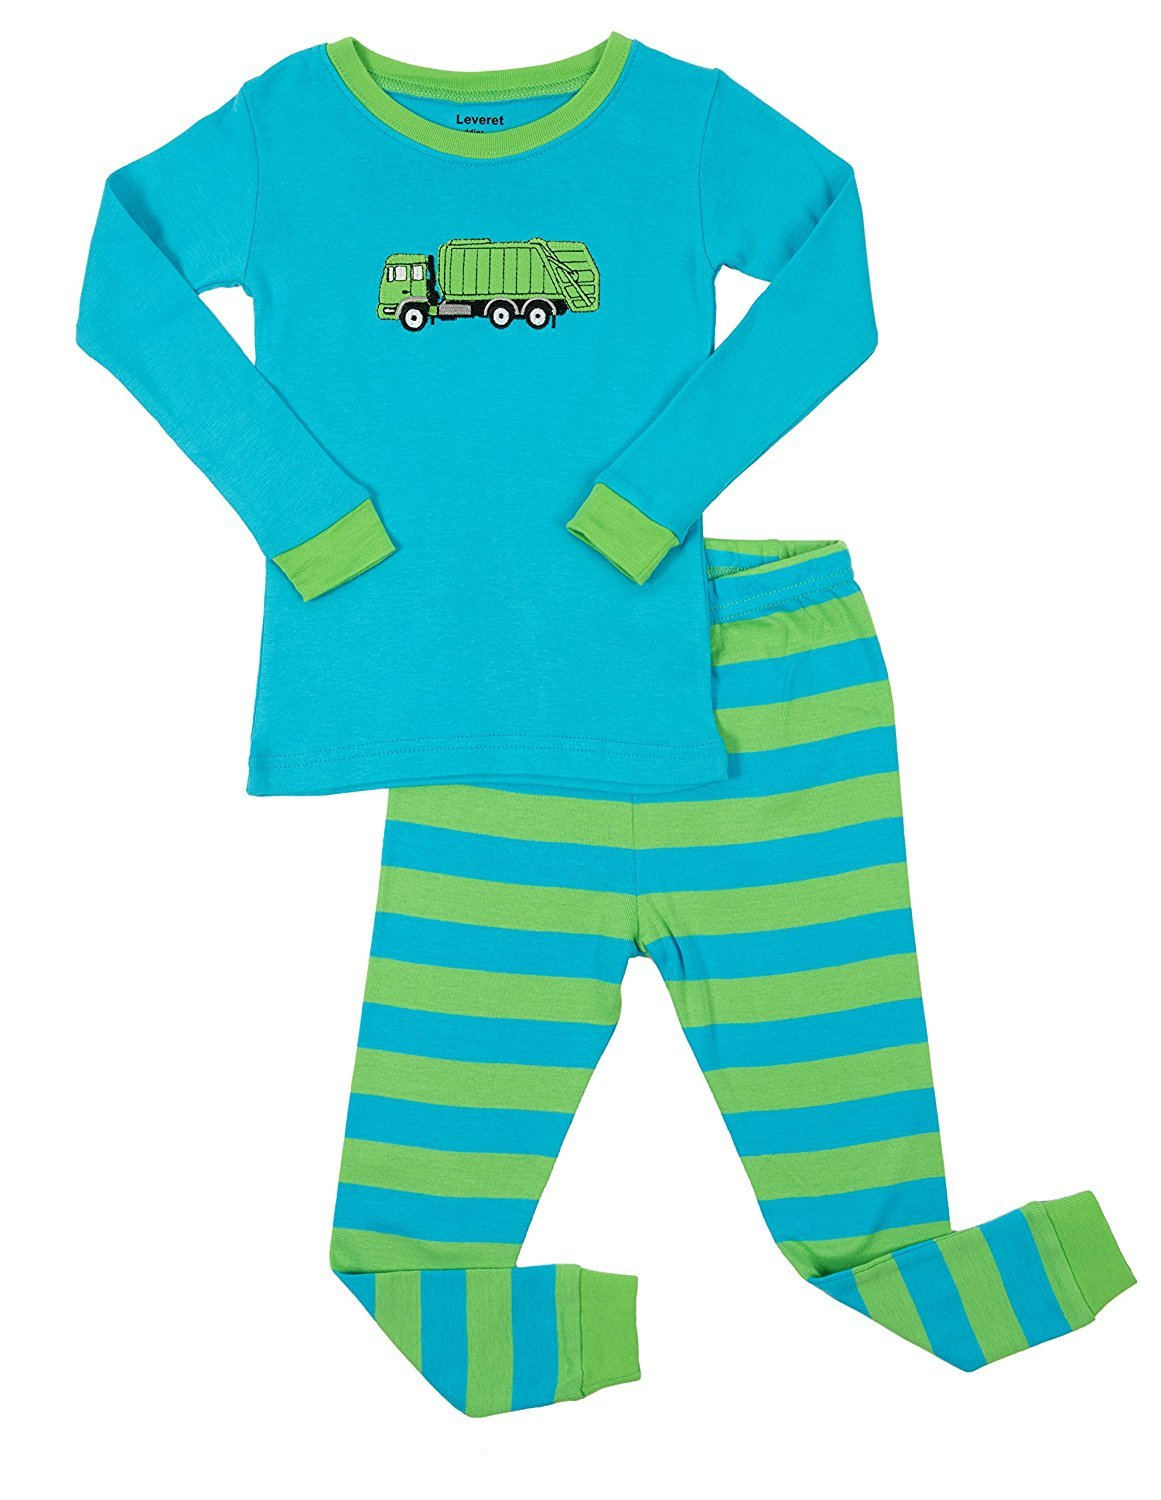 Leveret Garbage Truck 2 Piece Pajama Set 100% Cotton 12-18 Months